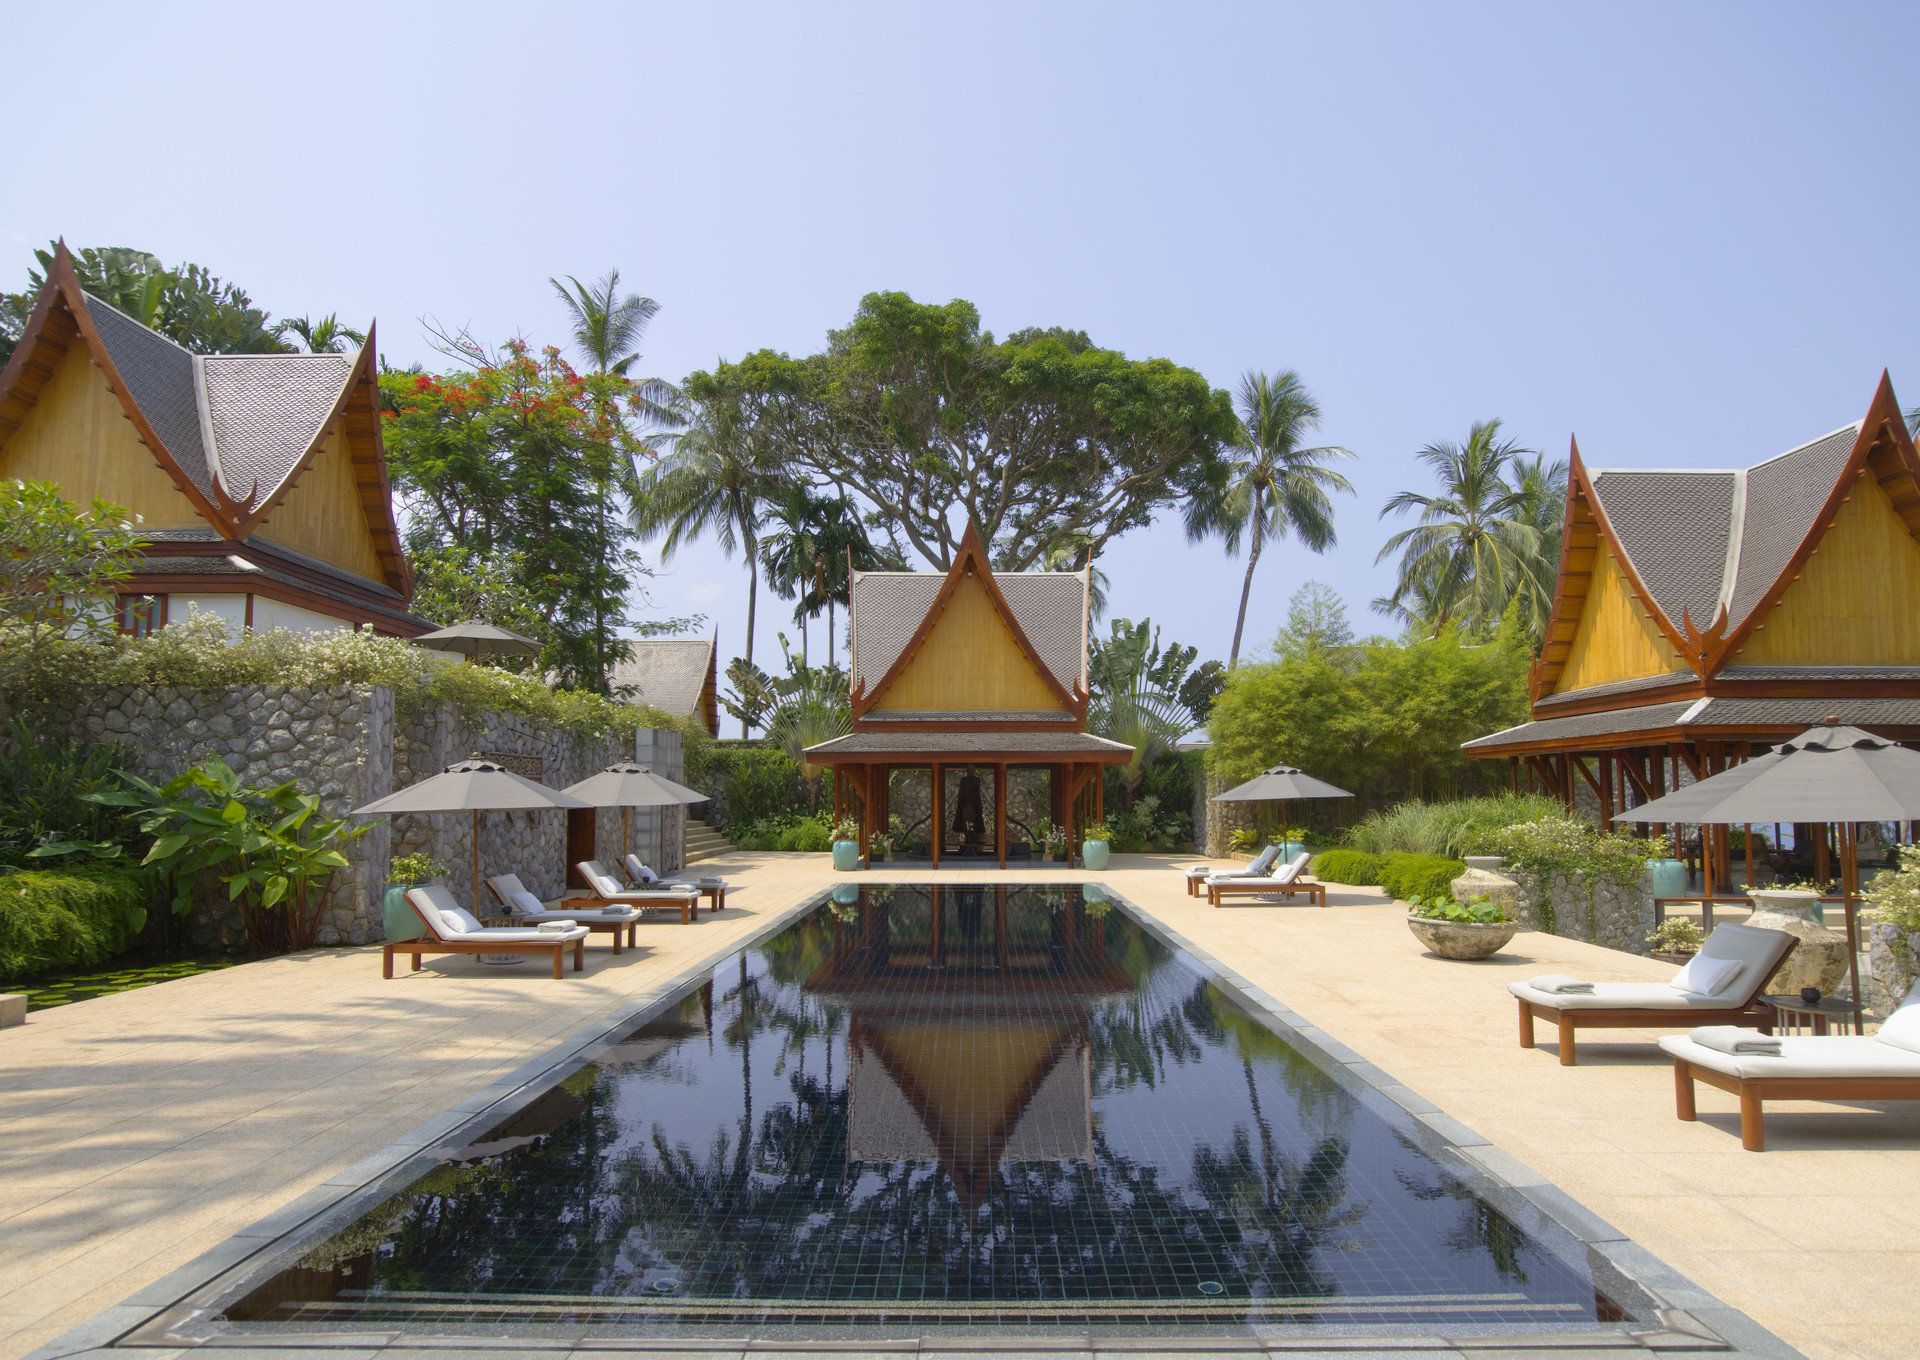 Beach Hotels Phuket Thailand tree outdoor sky property building Resort estate Villa vacation swimming pool temple wat outdoor structure palace hacienda mansion several